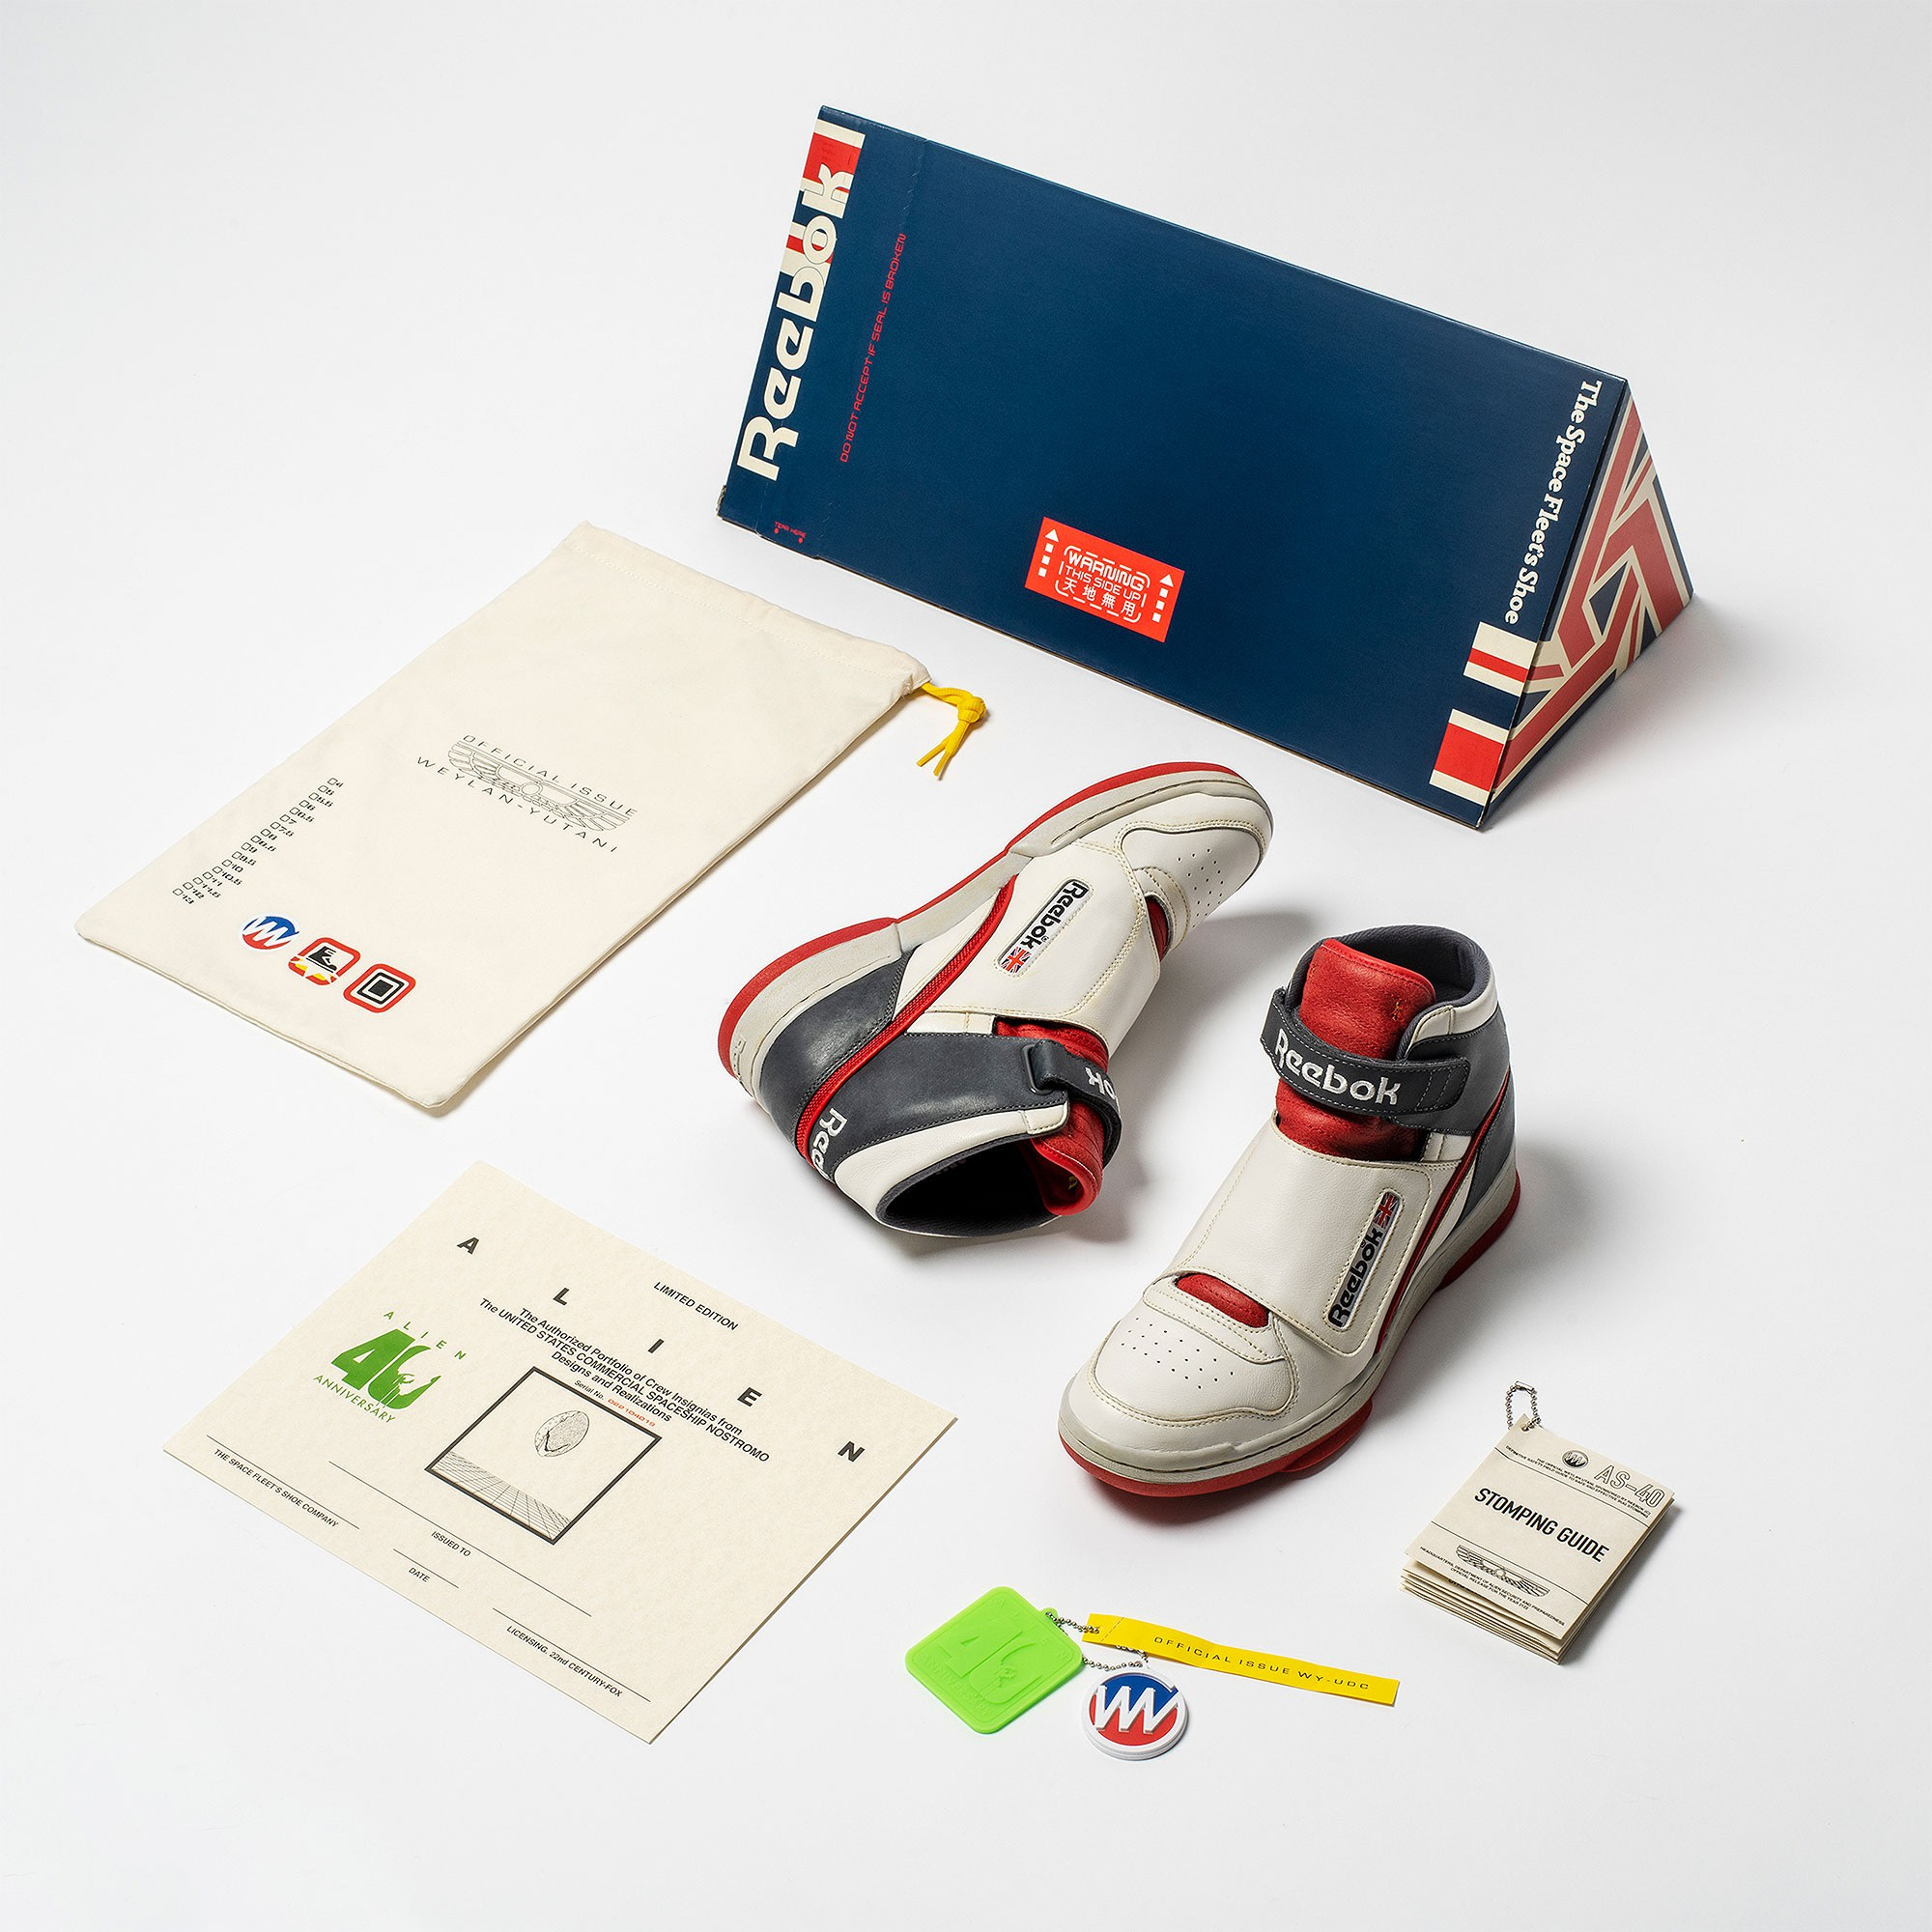 Reebok Alien Stomper Bishop Edition '40th Anniversary' DV8578 (Packaging)